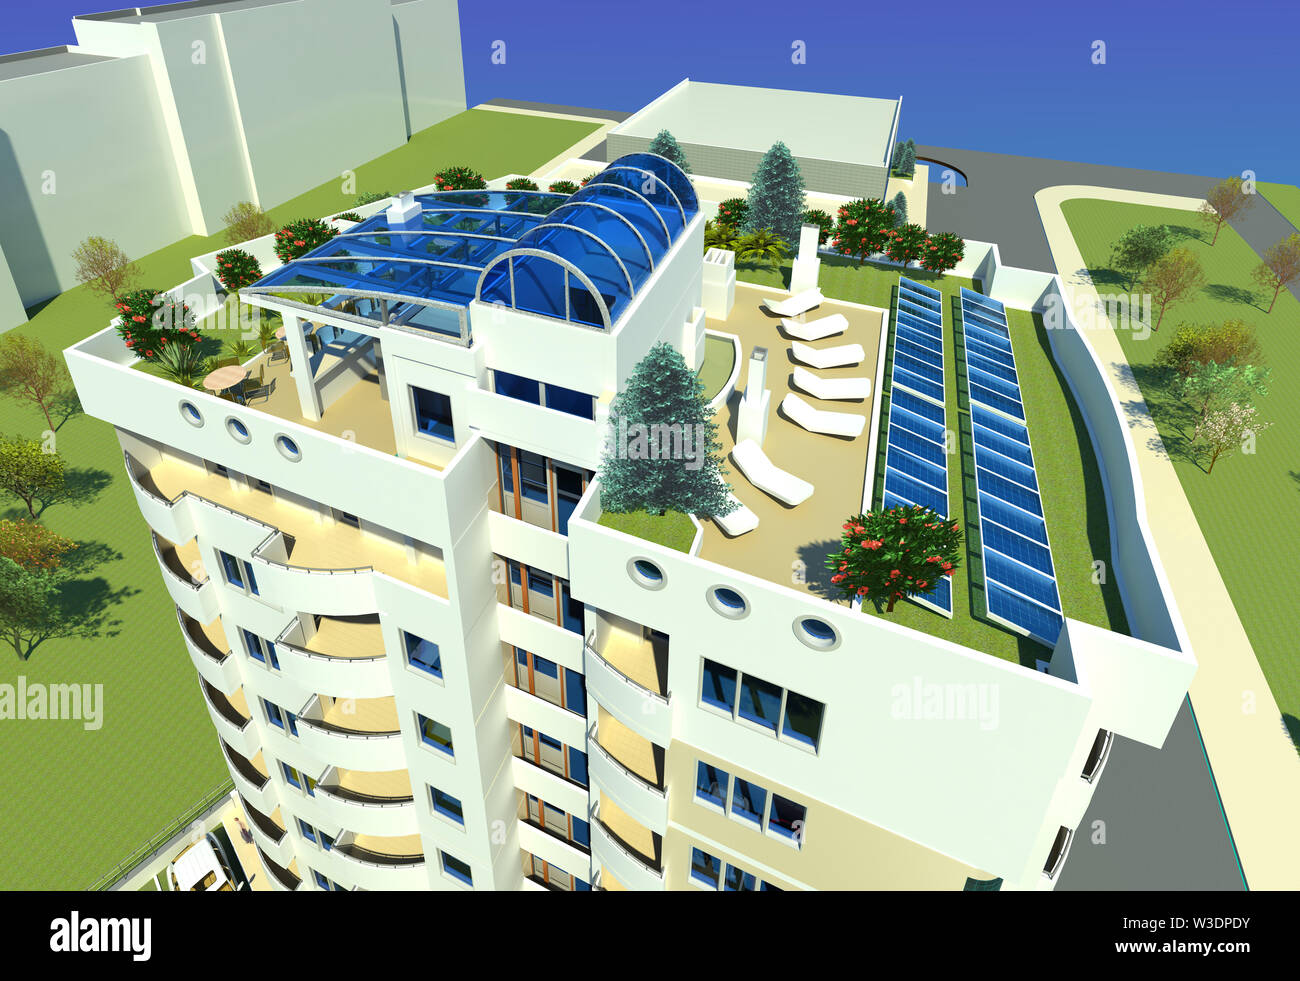 Roof top green area architectural model design 3D